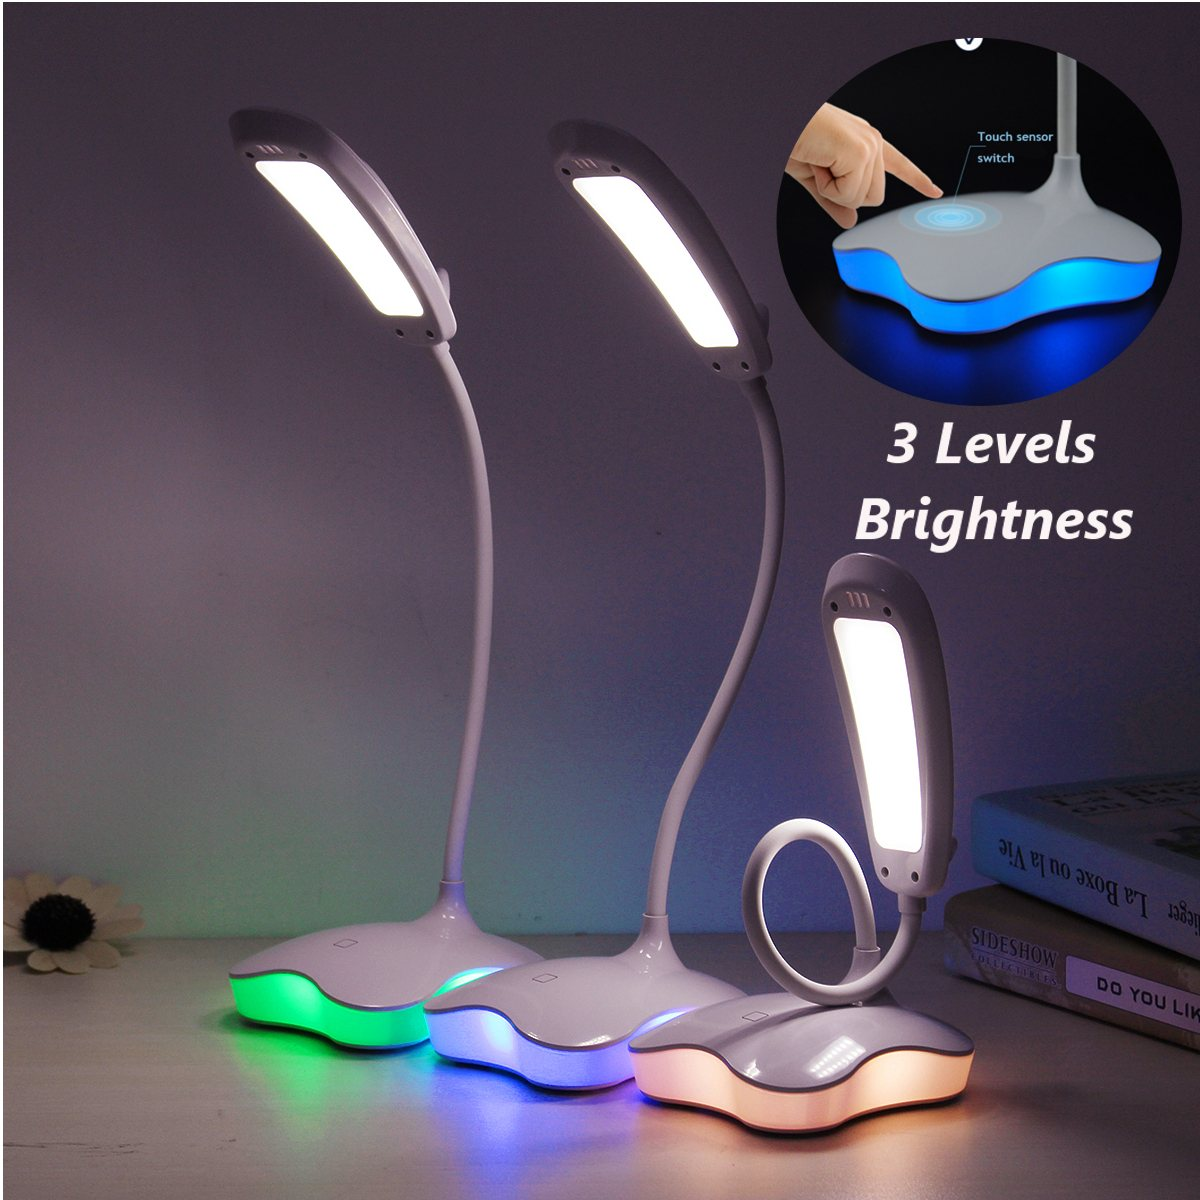 DC 5V LED USB Rechargable Touch Switch Night Light Flexible Desk Work Table Book Lamp 3 level Adjusted Brightness Eye Protection 30 55cm 6w usb led table lamp portable night light 2835 beside reading book work desk lamp 5v led rigid strip bar light